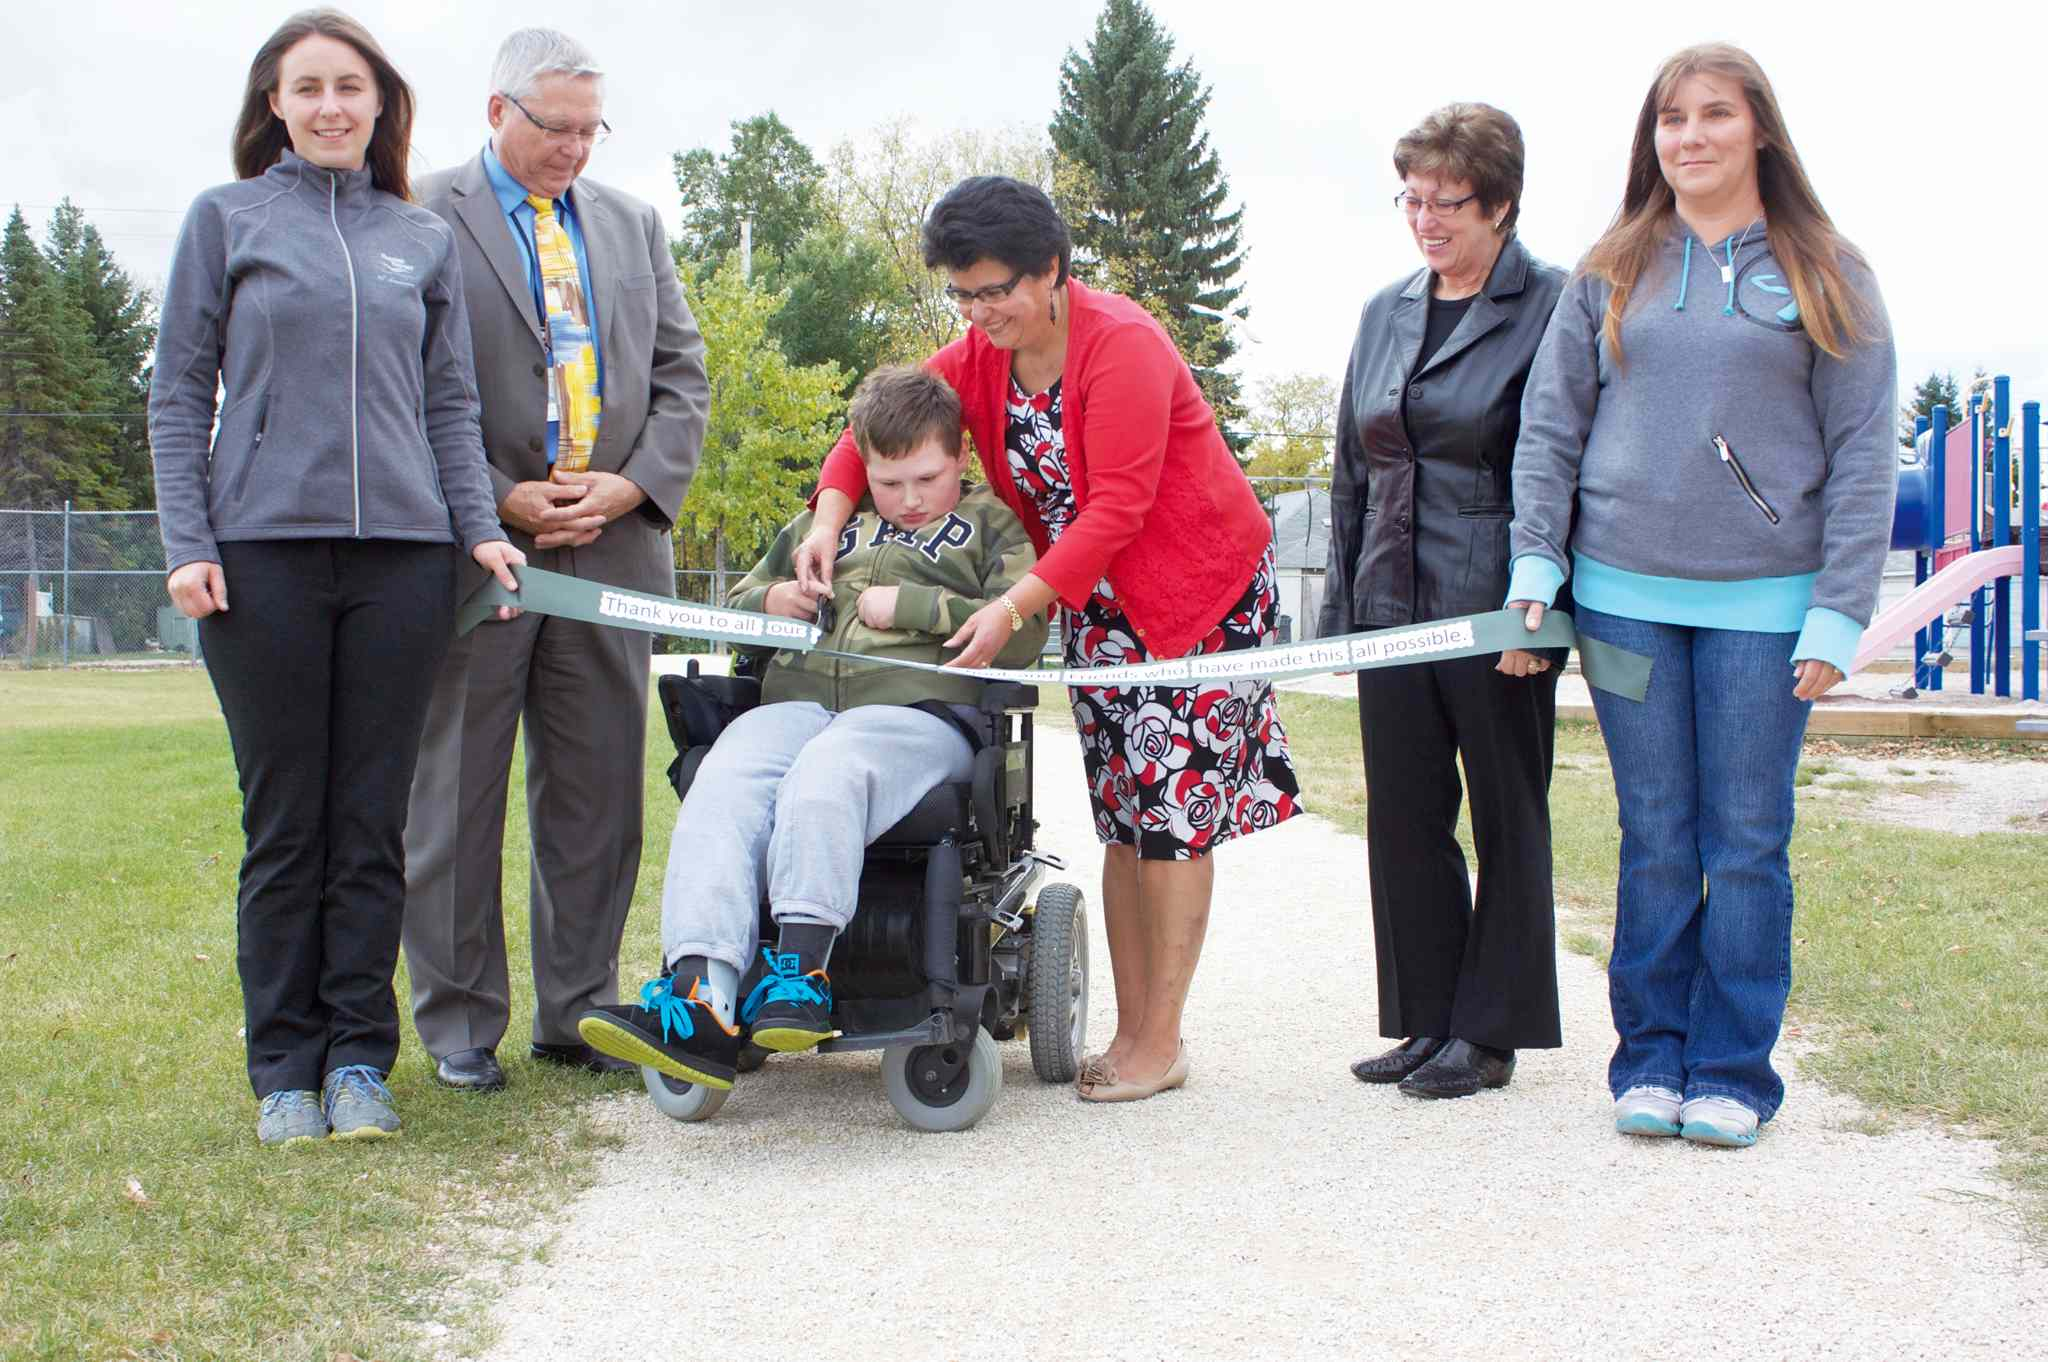 Prince Edward Community School principal Linda Mauthe helps Grade 6 student Quinton Ullman (centre) cut the ribbon for the school's revamped walking path on Oct. 3. They are flanked by advisory council president Marni McCluskey (far left), vice-president Jacquie Meilleur (far right), assistant superintendent Keith Morrison (second from left), and Ward 4 trustee Eva Prysizney (second from right).